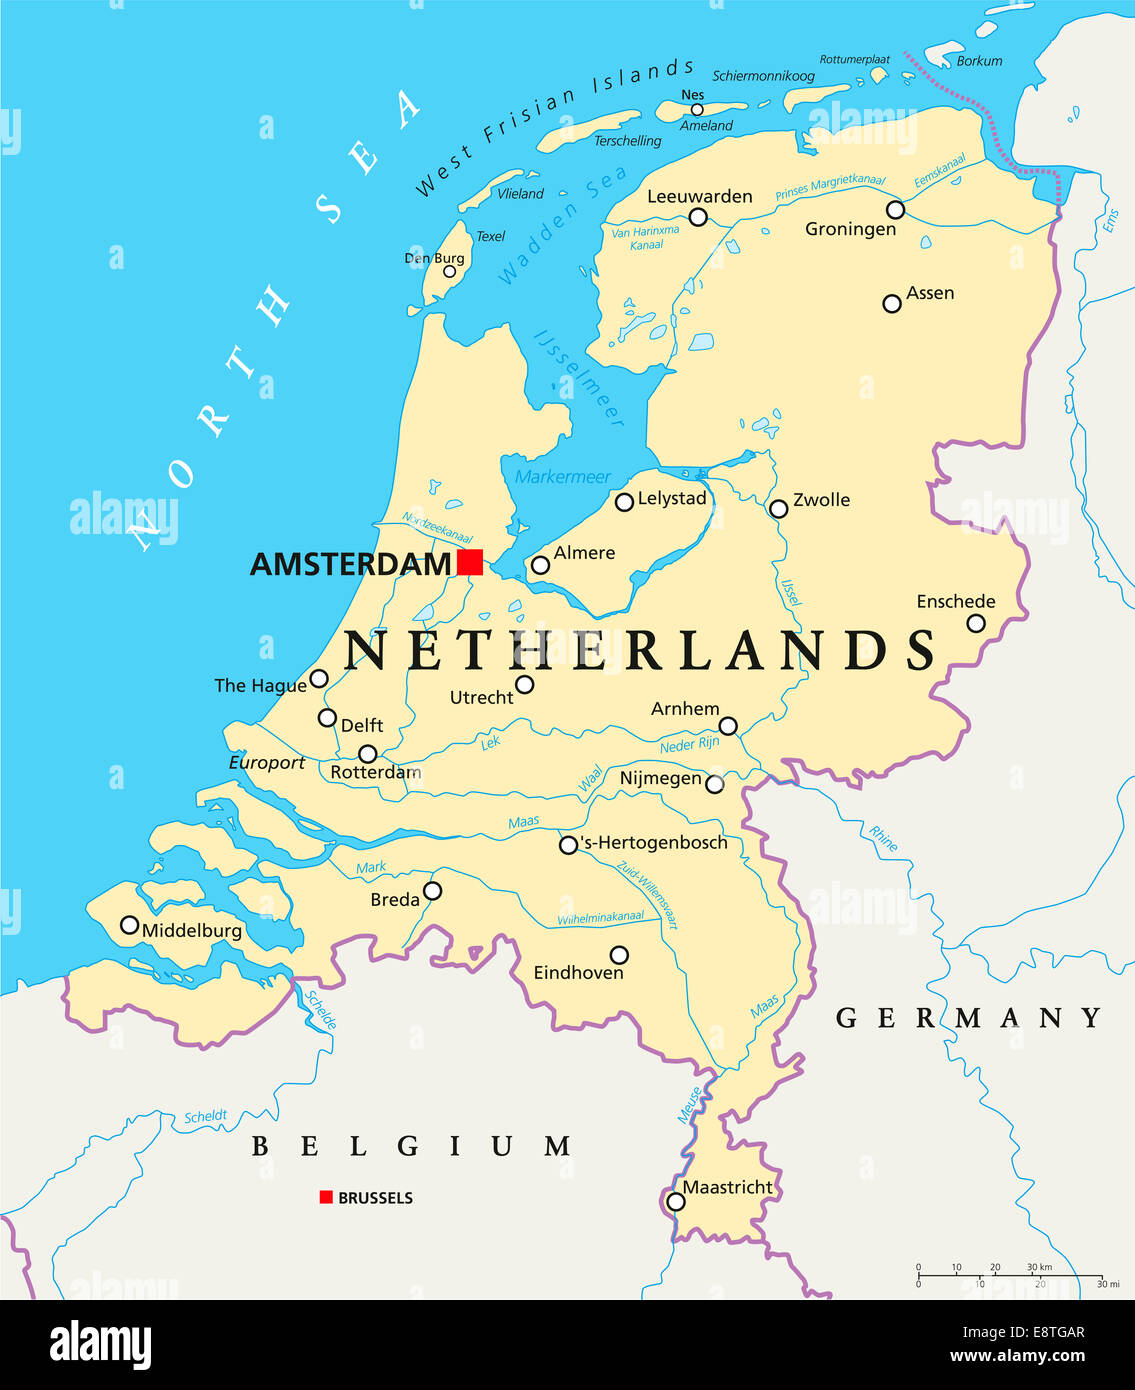 Netherlands Political Map With Capital Amsterdam National Borders - Netherlands rivers map